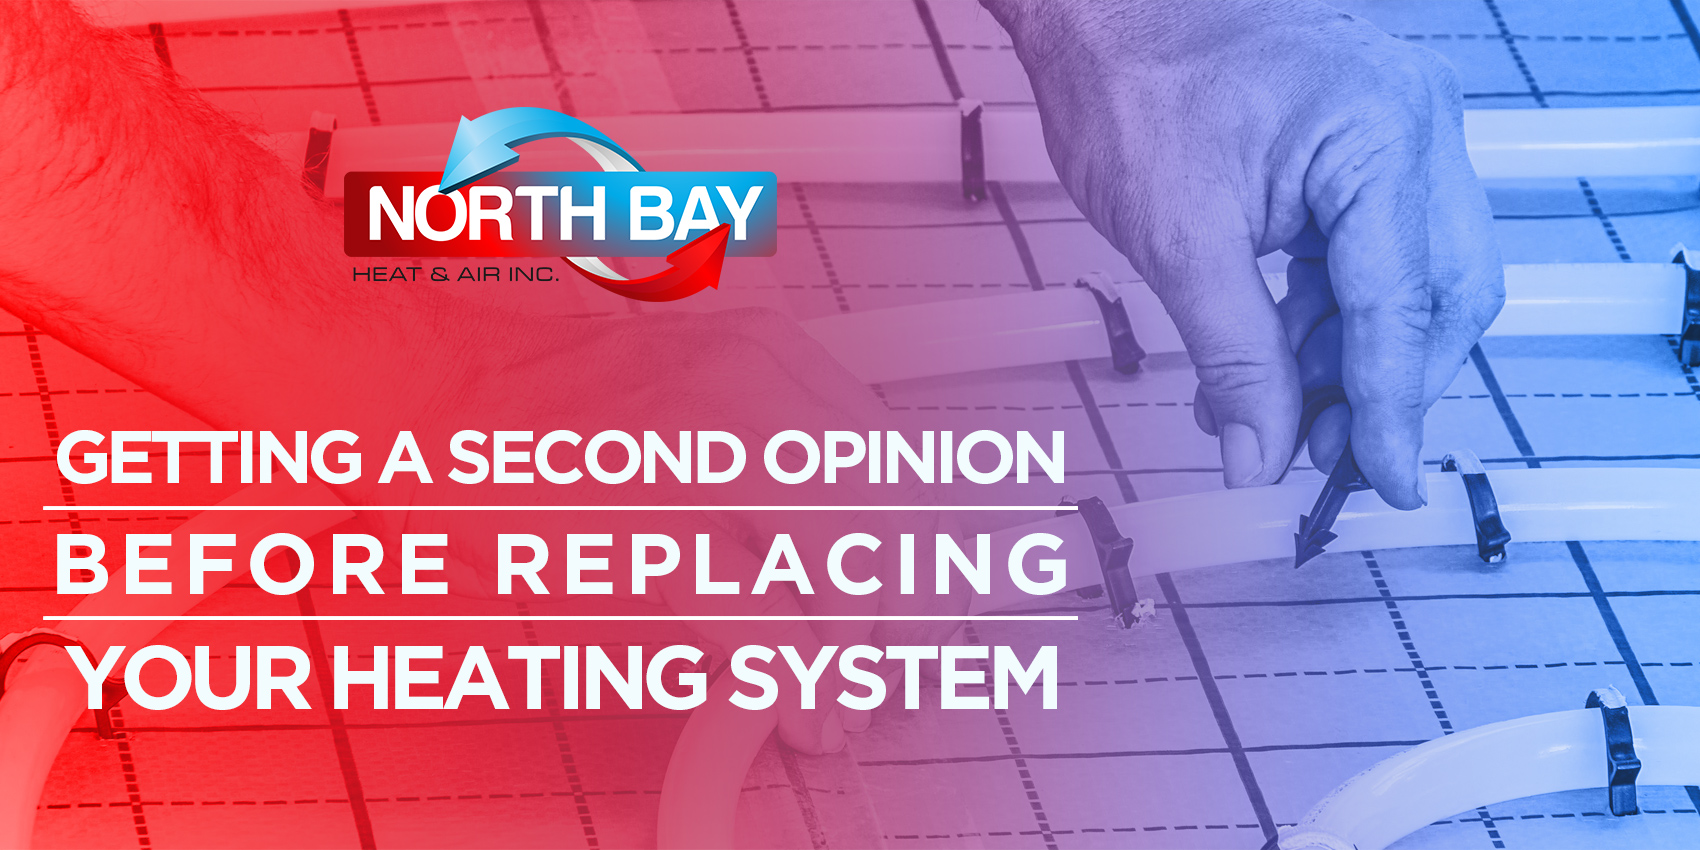 Getting a Second Opinion Before Replacing Your Heating System